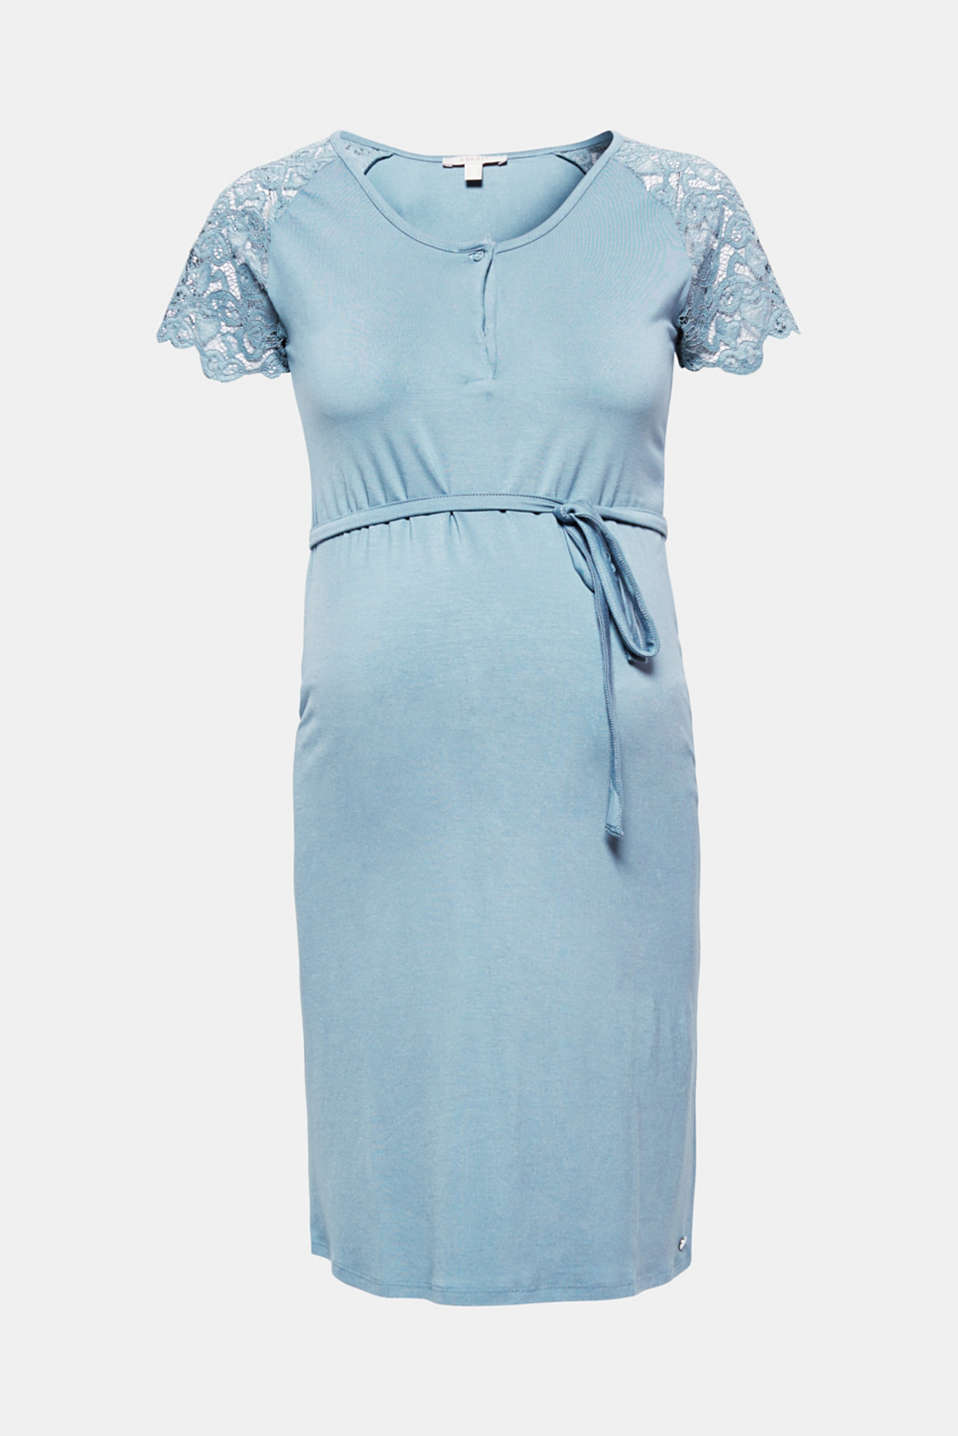 The fine lace and soft jersey give this maternity dress a particularly pretty, feminine twist.